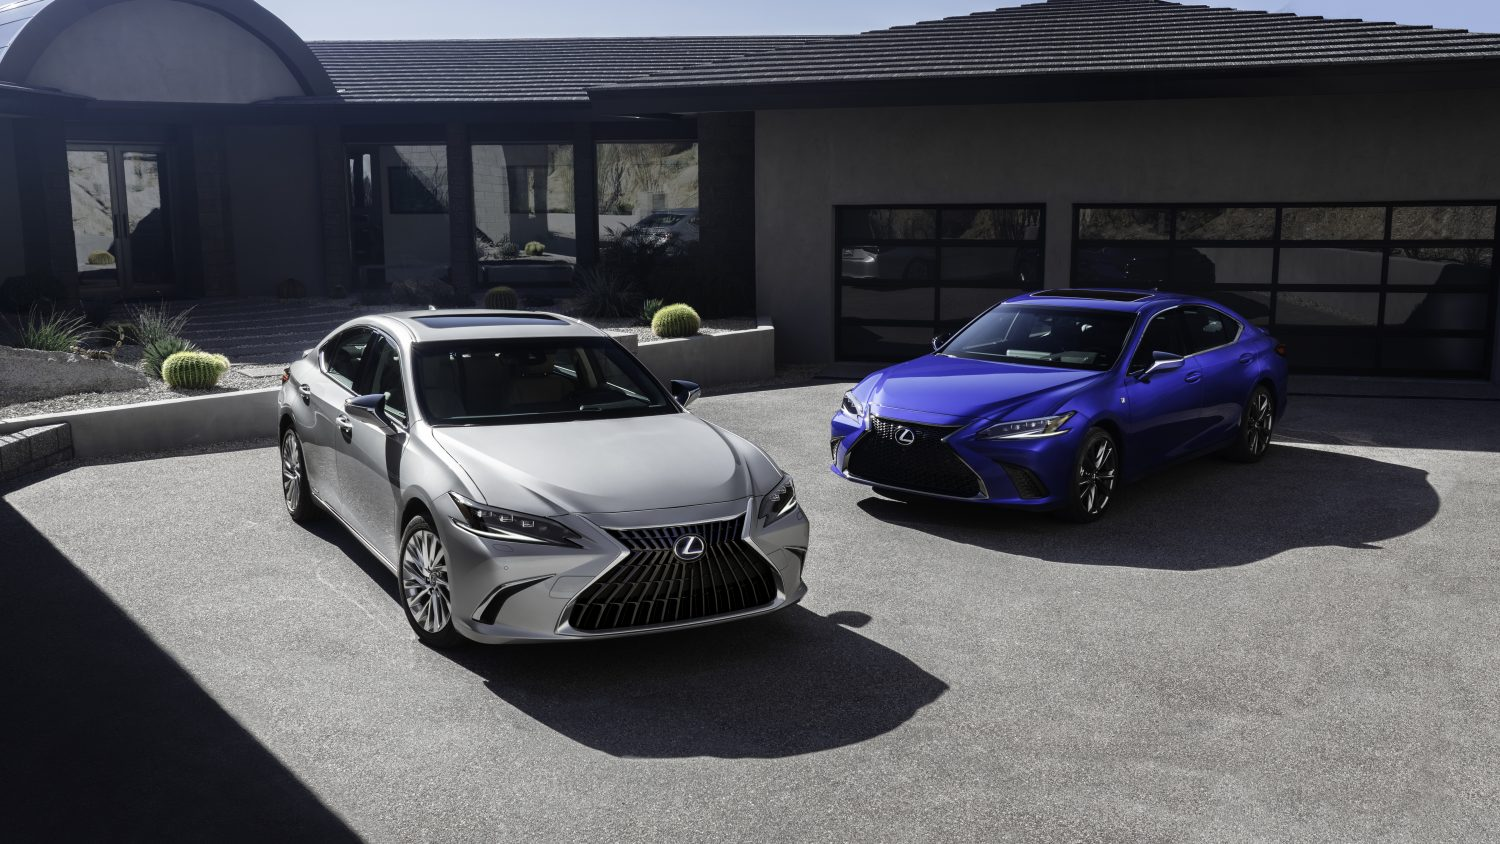 specifications and price of the 2022 Lexus ES in Nigeria